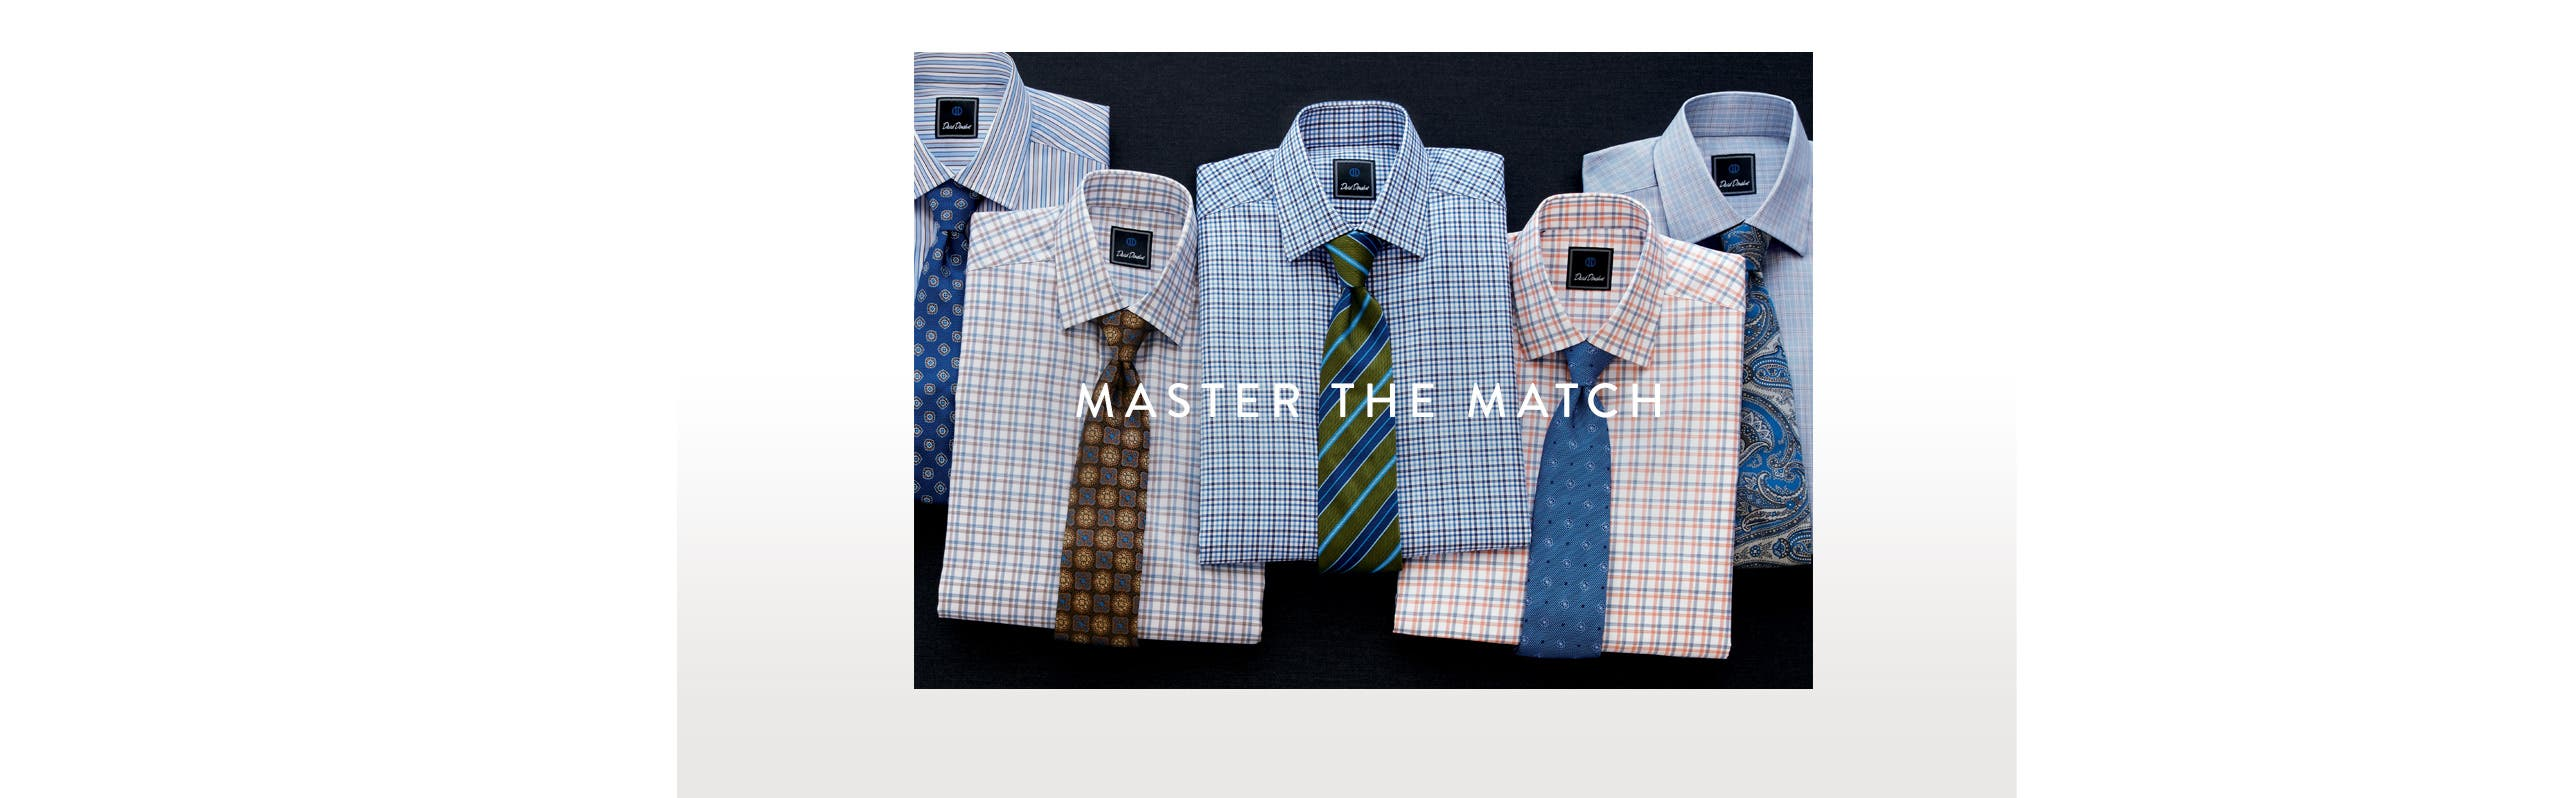 Master the match.